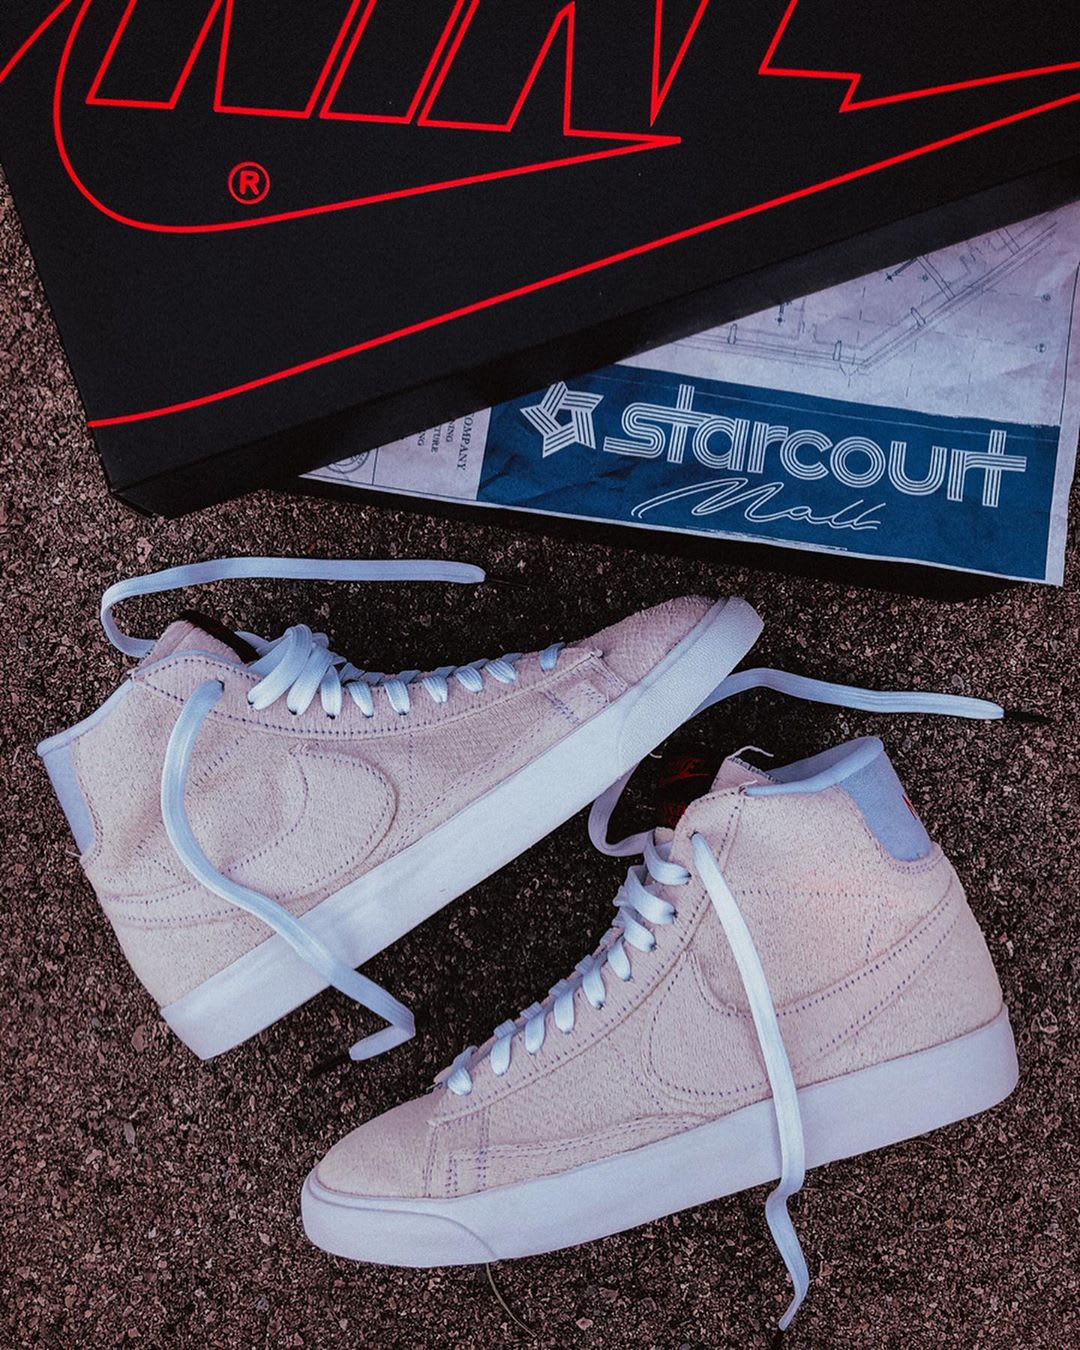 stranger-things-nike-blazer-mid-starcourt-mall